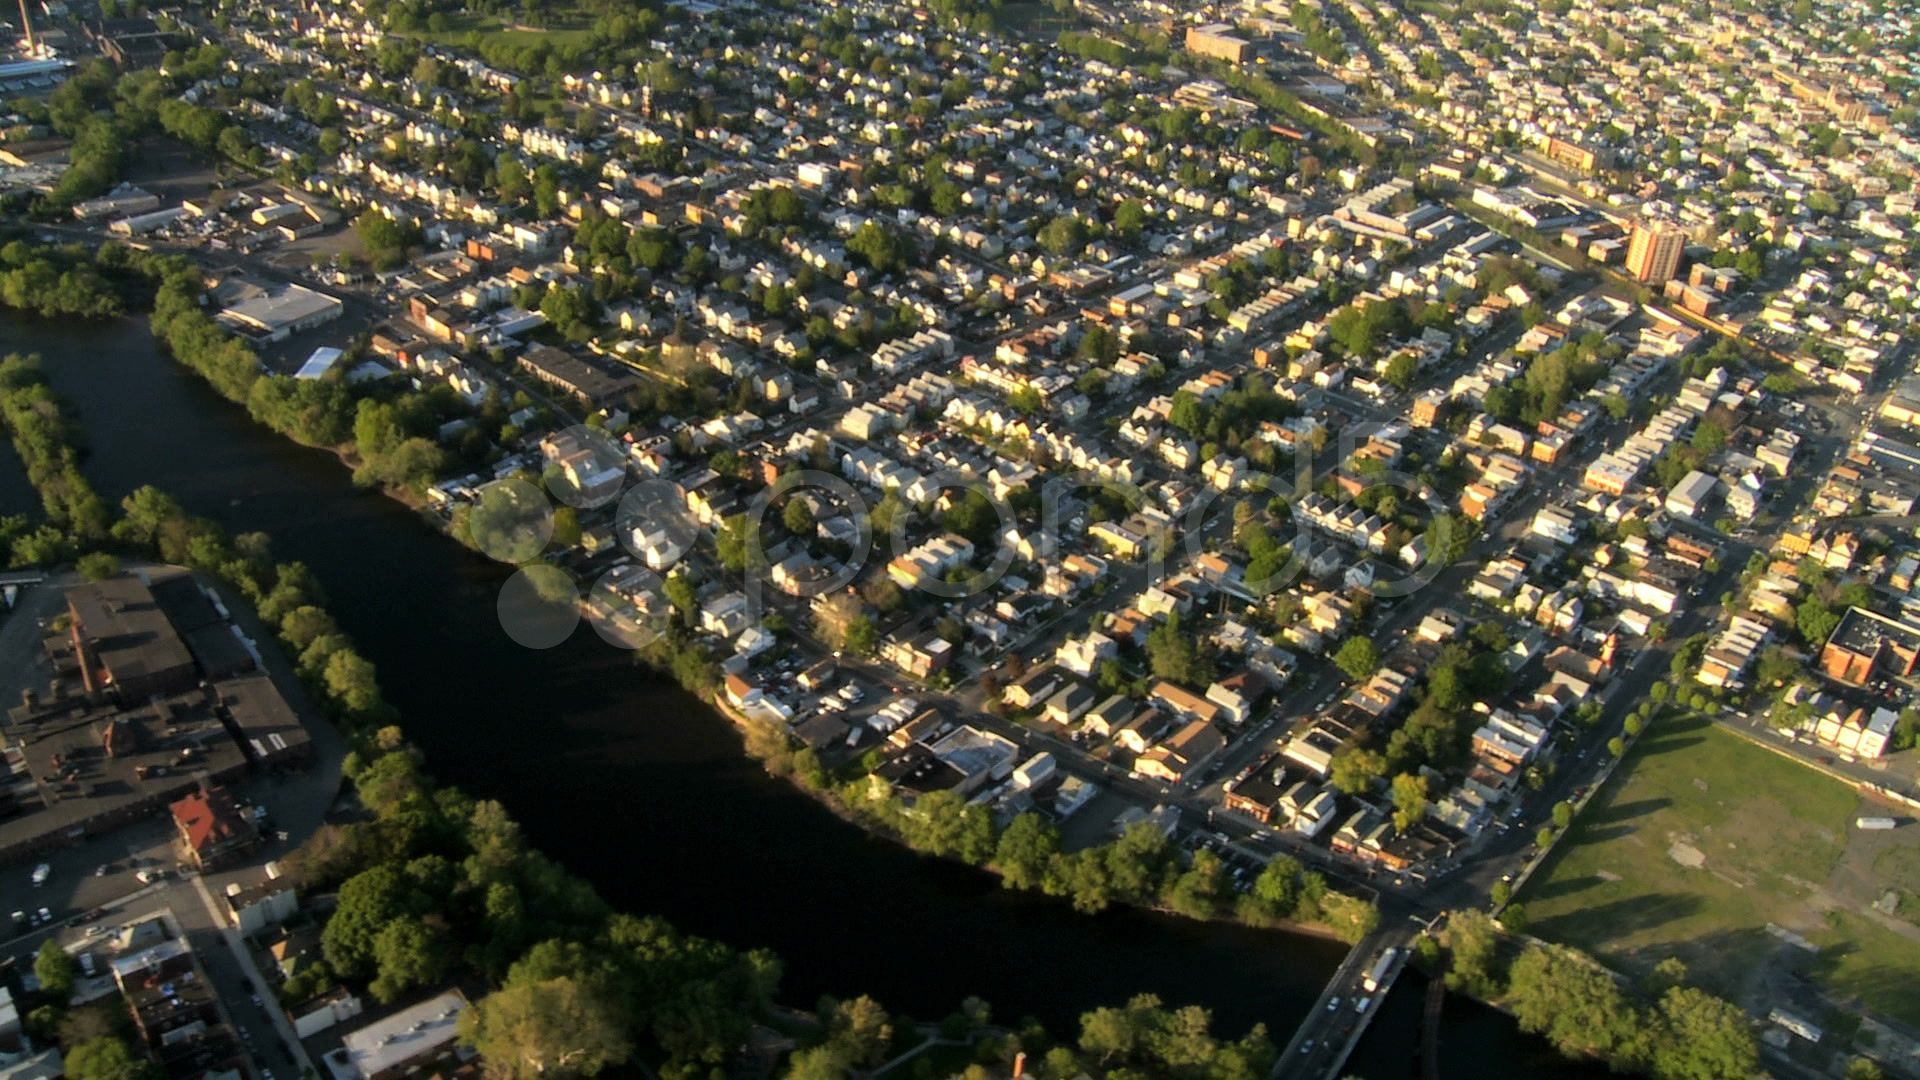 Aerial View Of New Jersey And Suburbs New York State Ny Usa Stock Footage Suburbs York Jersey Aerial Aerial View New York State Aerial